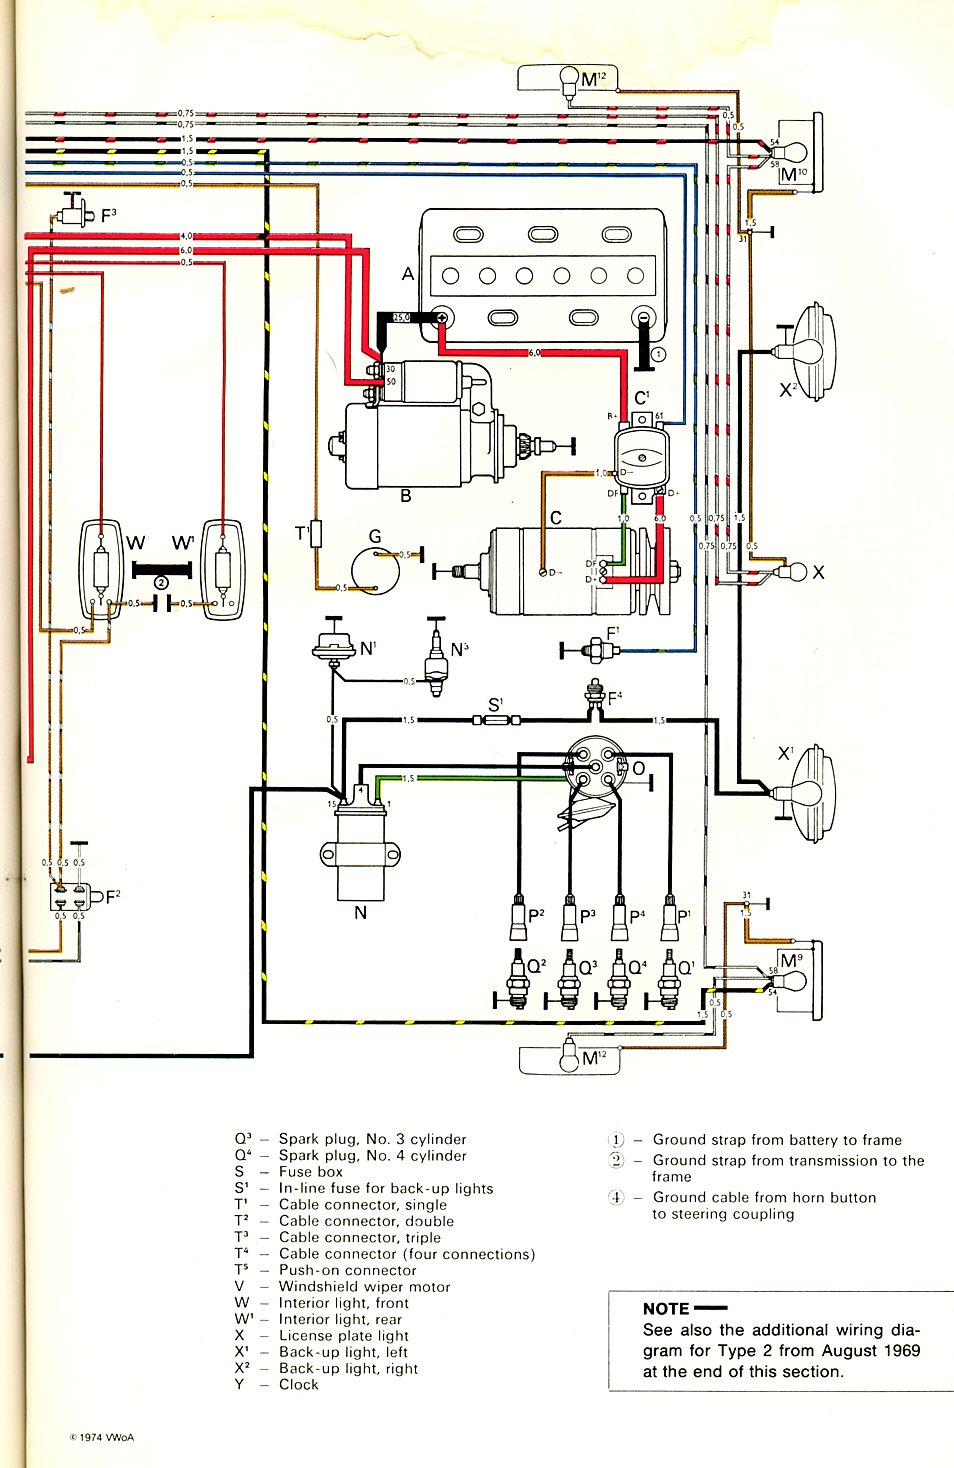 Through A Horn Relay Wiring Content Resource Of 12v Diagram Thesamba Com Type 2 Diagrams Air Gm